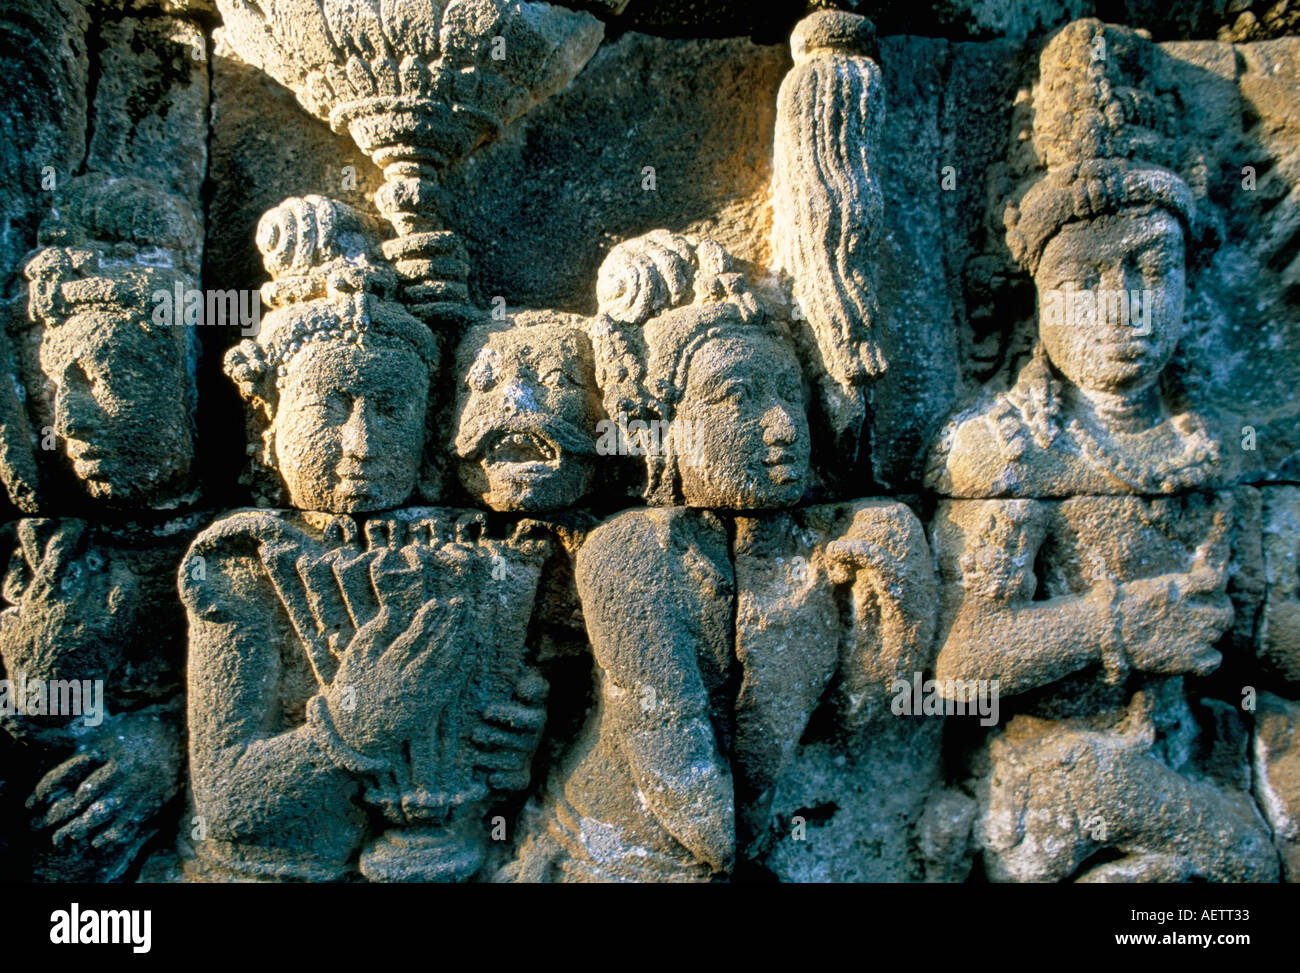 Detail of carved friezes dated from the 8th century AD Buddhist site of Borobudur UNESCO World Heritage Site island of Java Indo - Stock Image